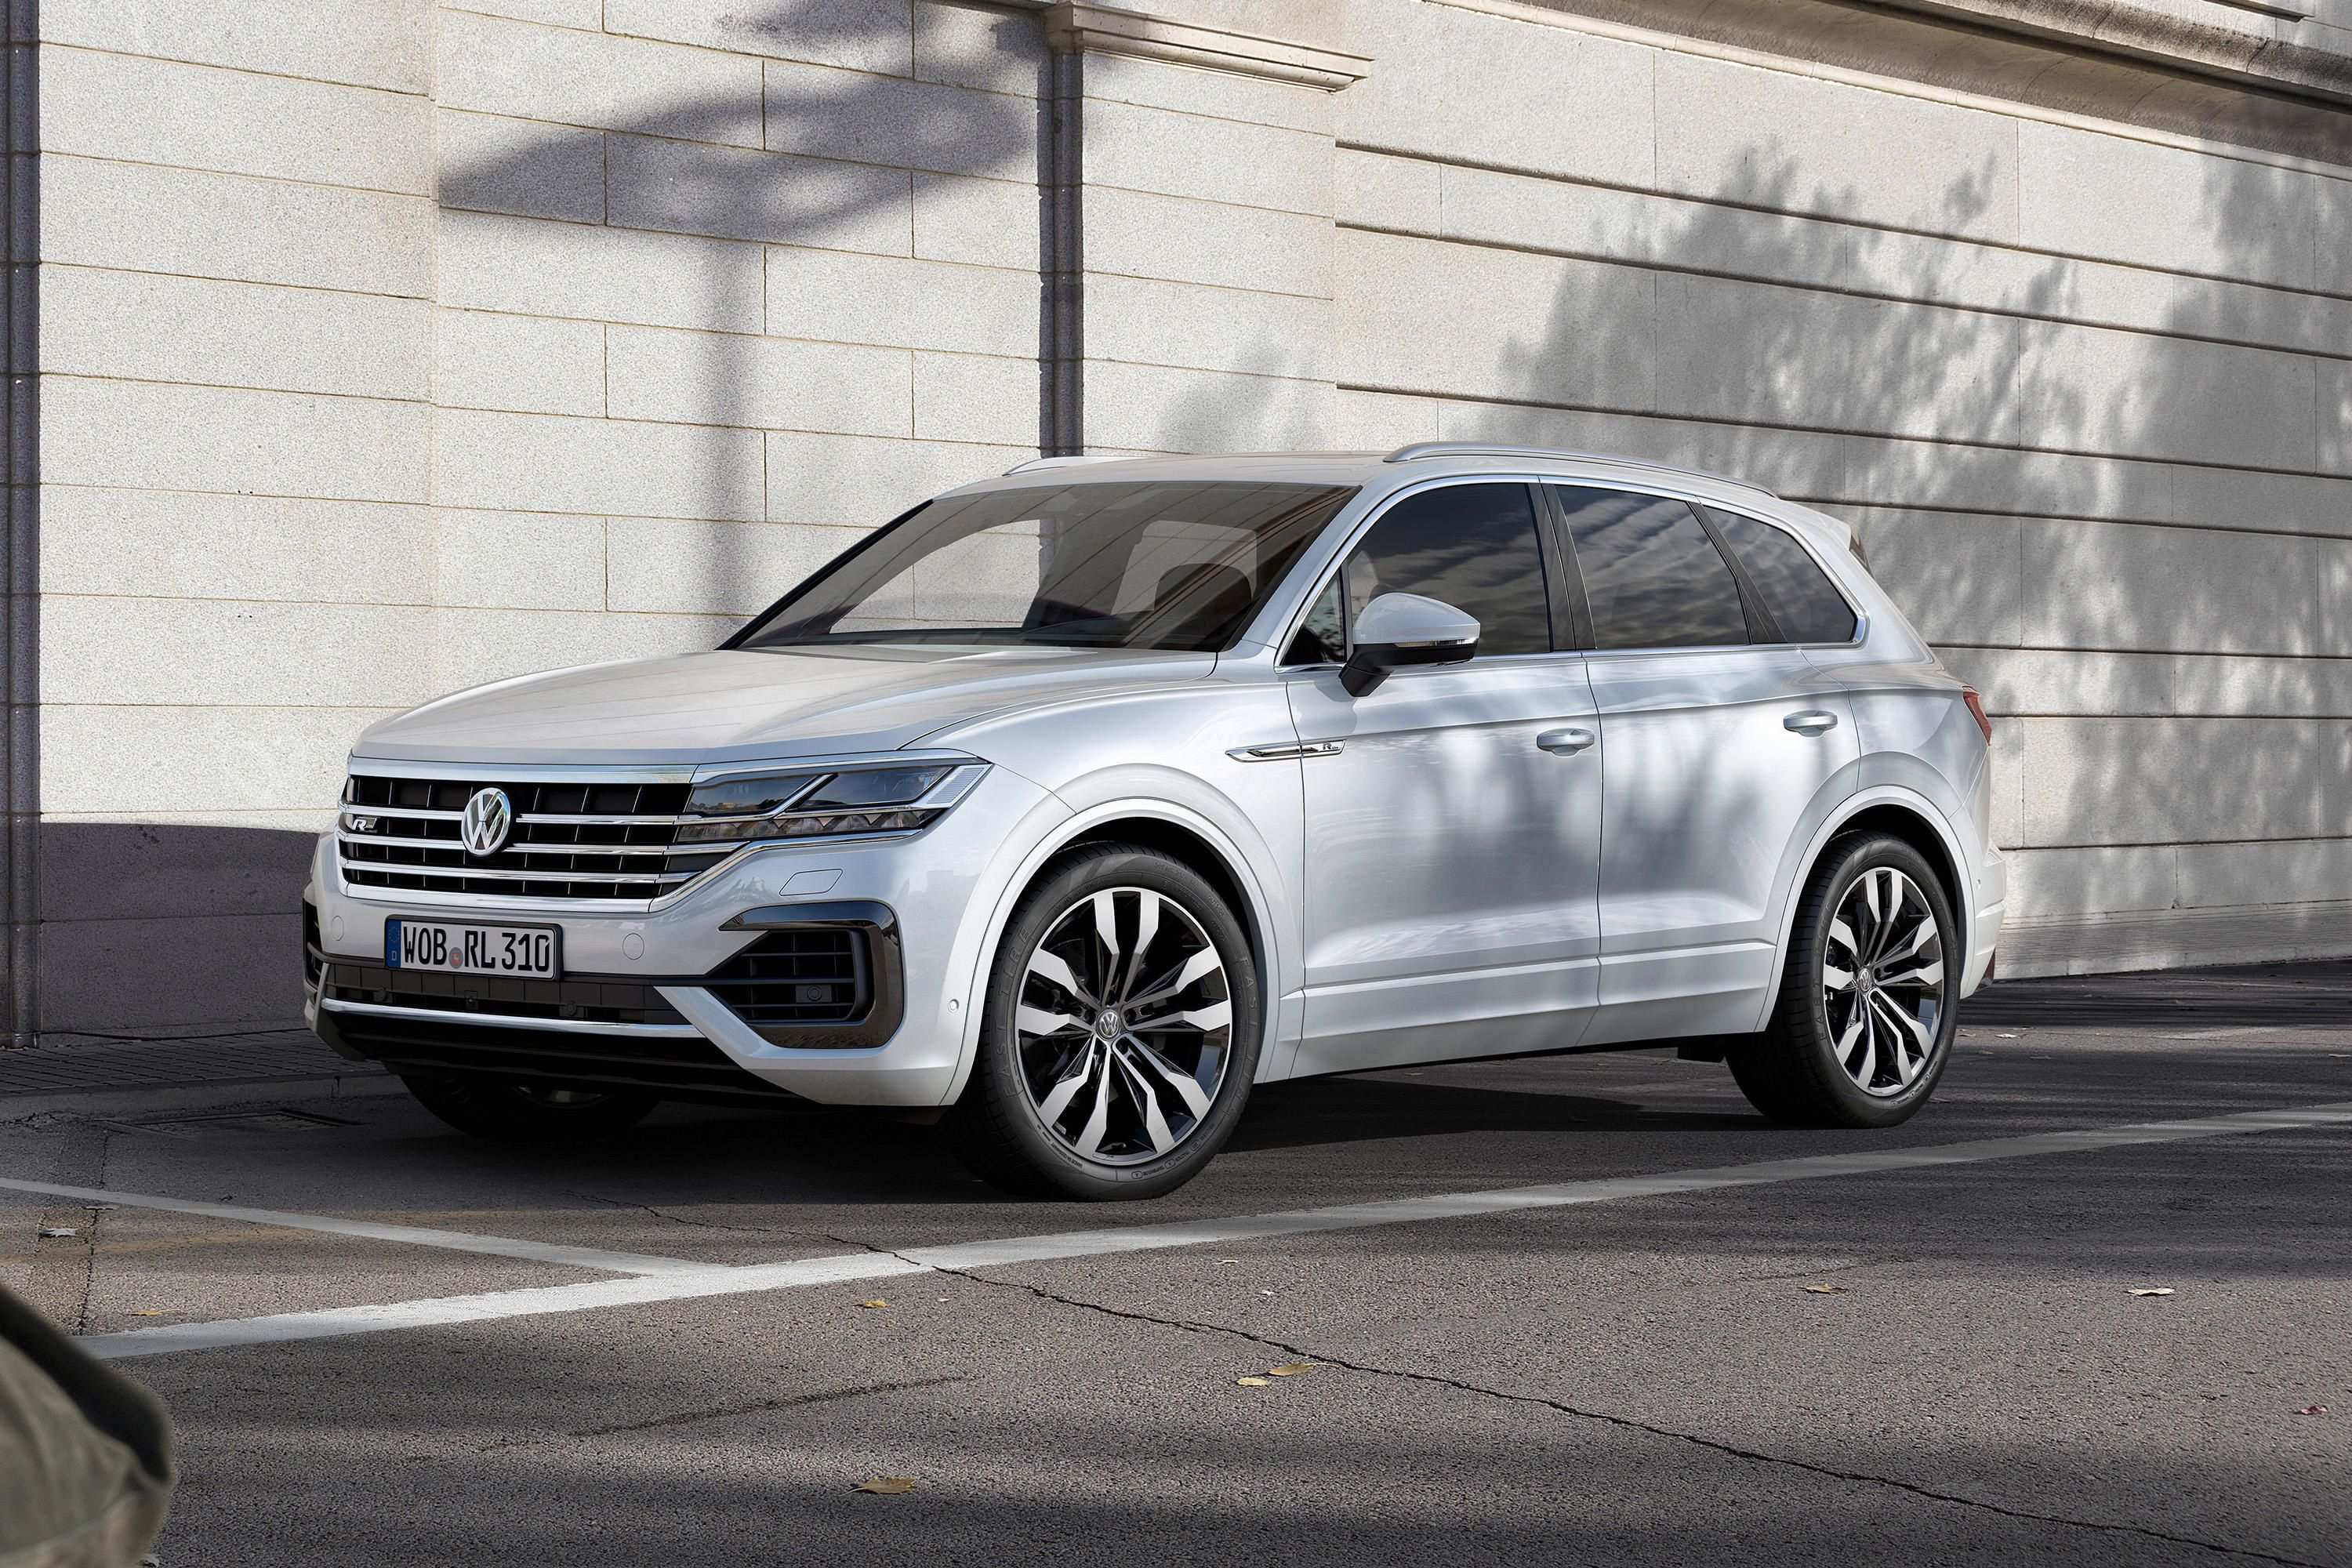 25 All New Touareg Vw 2019 Picture by Touareg Vw 2019